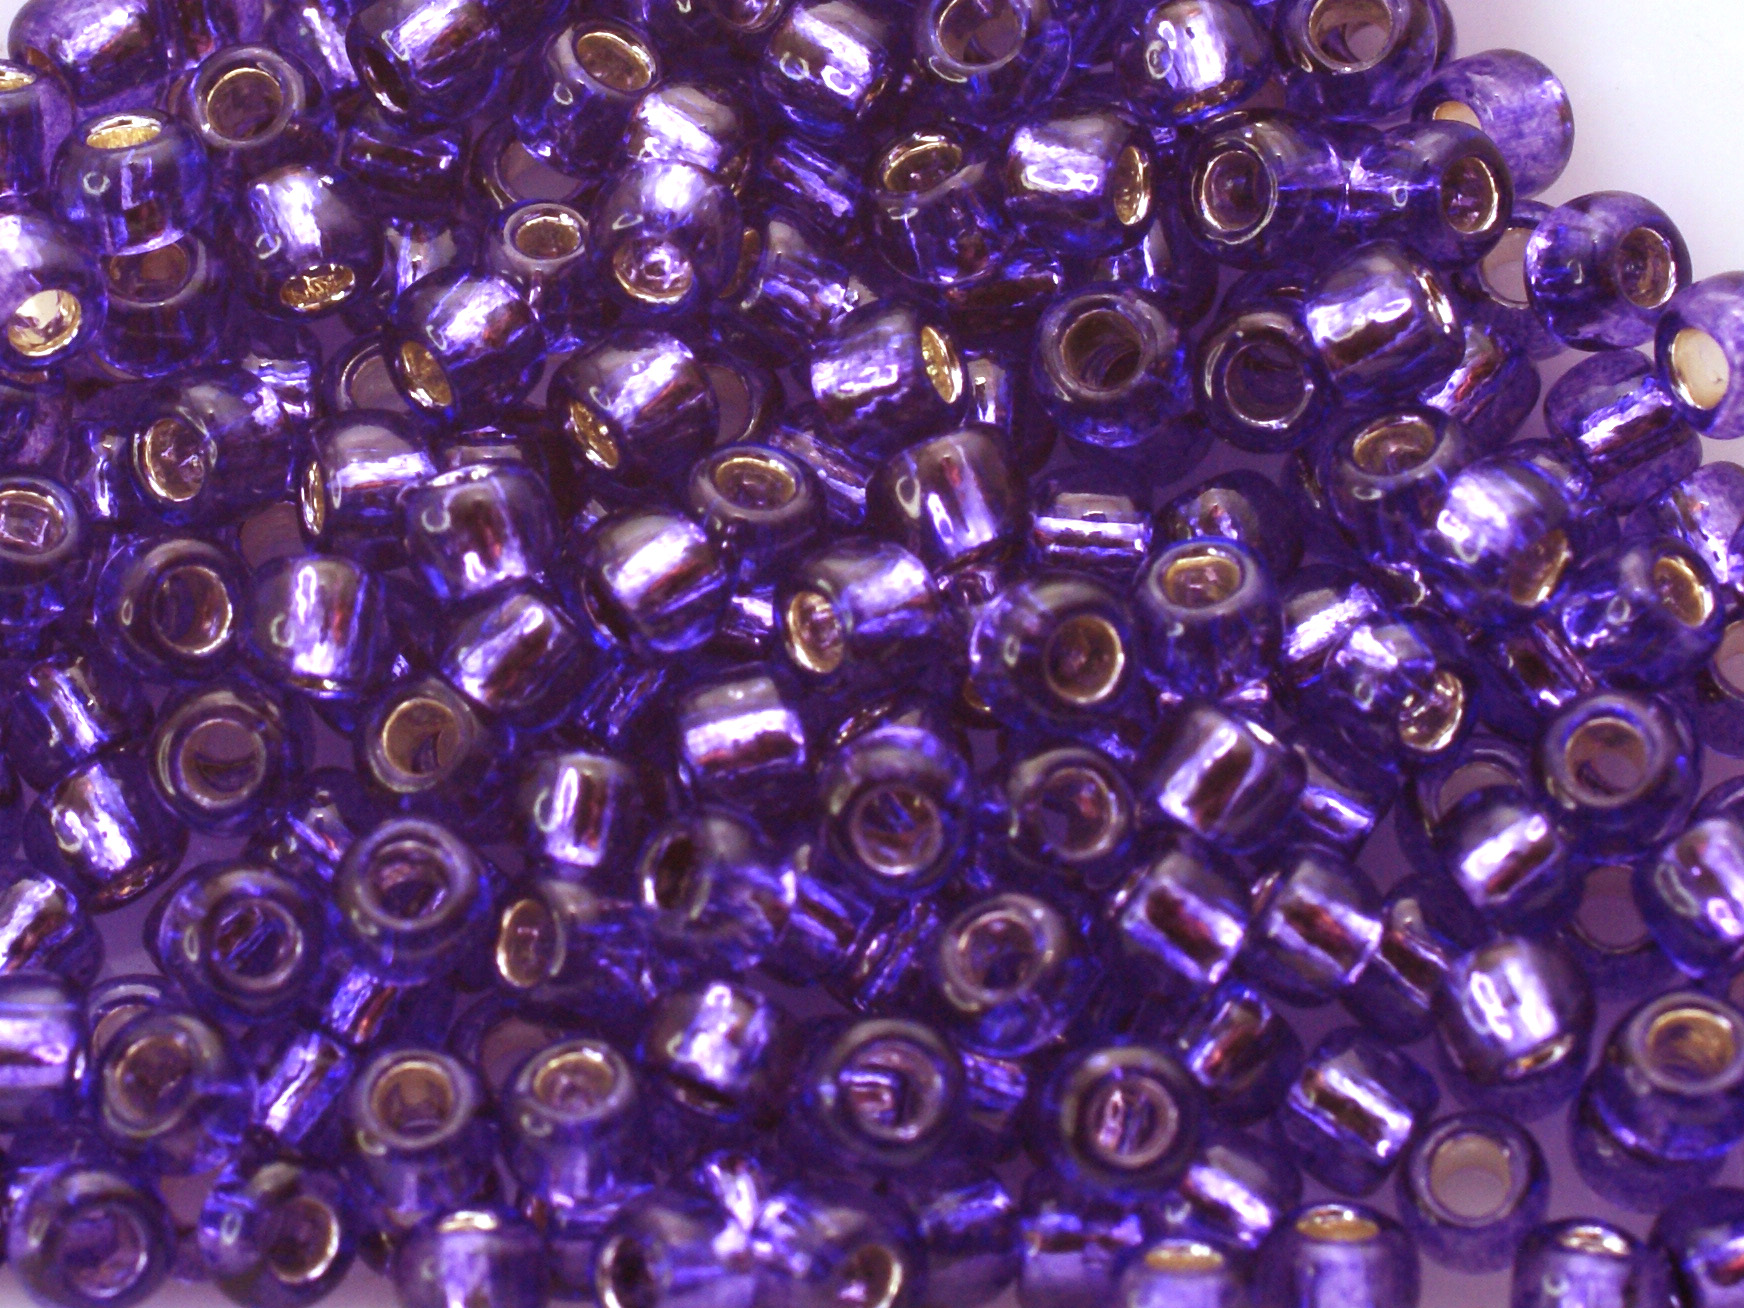 10 g 8/0 TOHO Seedbeads, Silverlined Purple